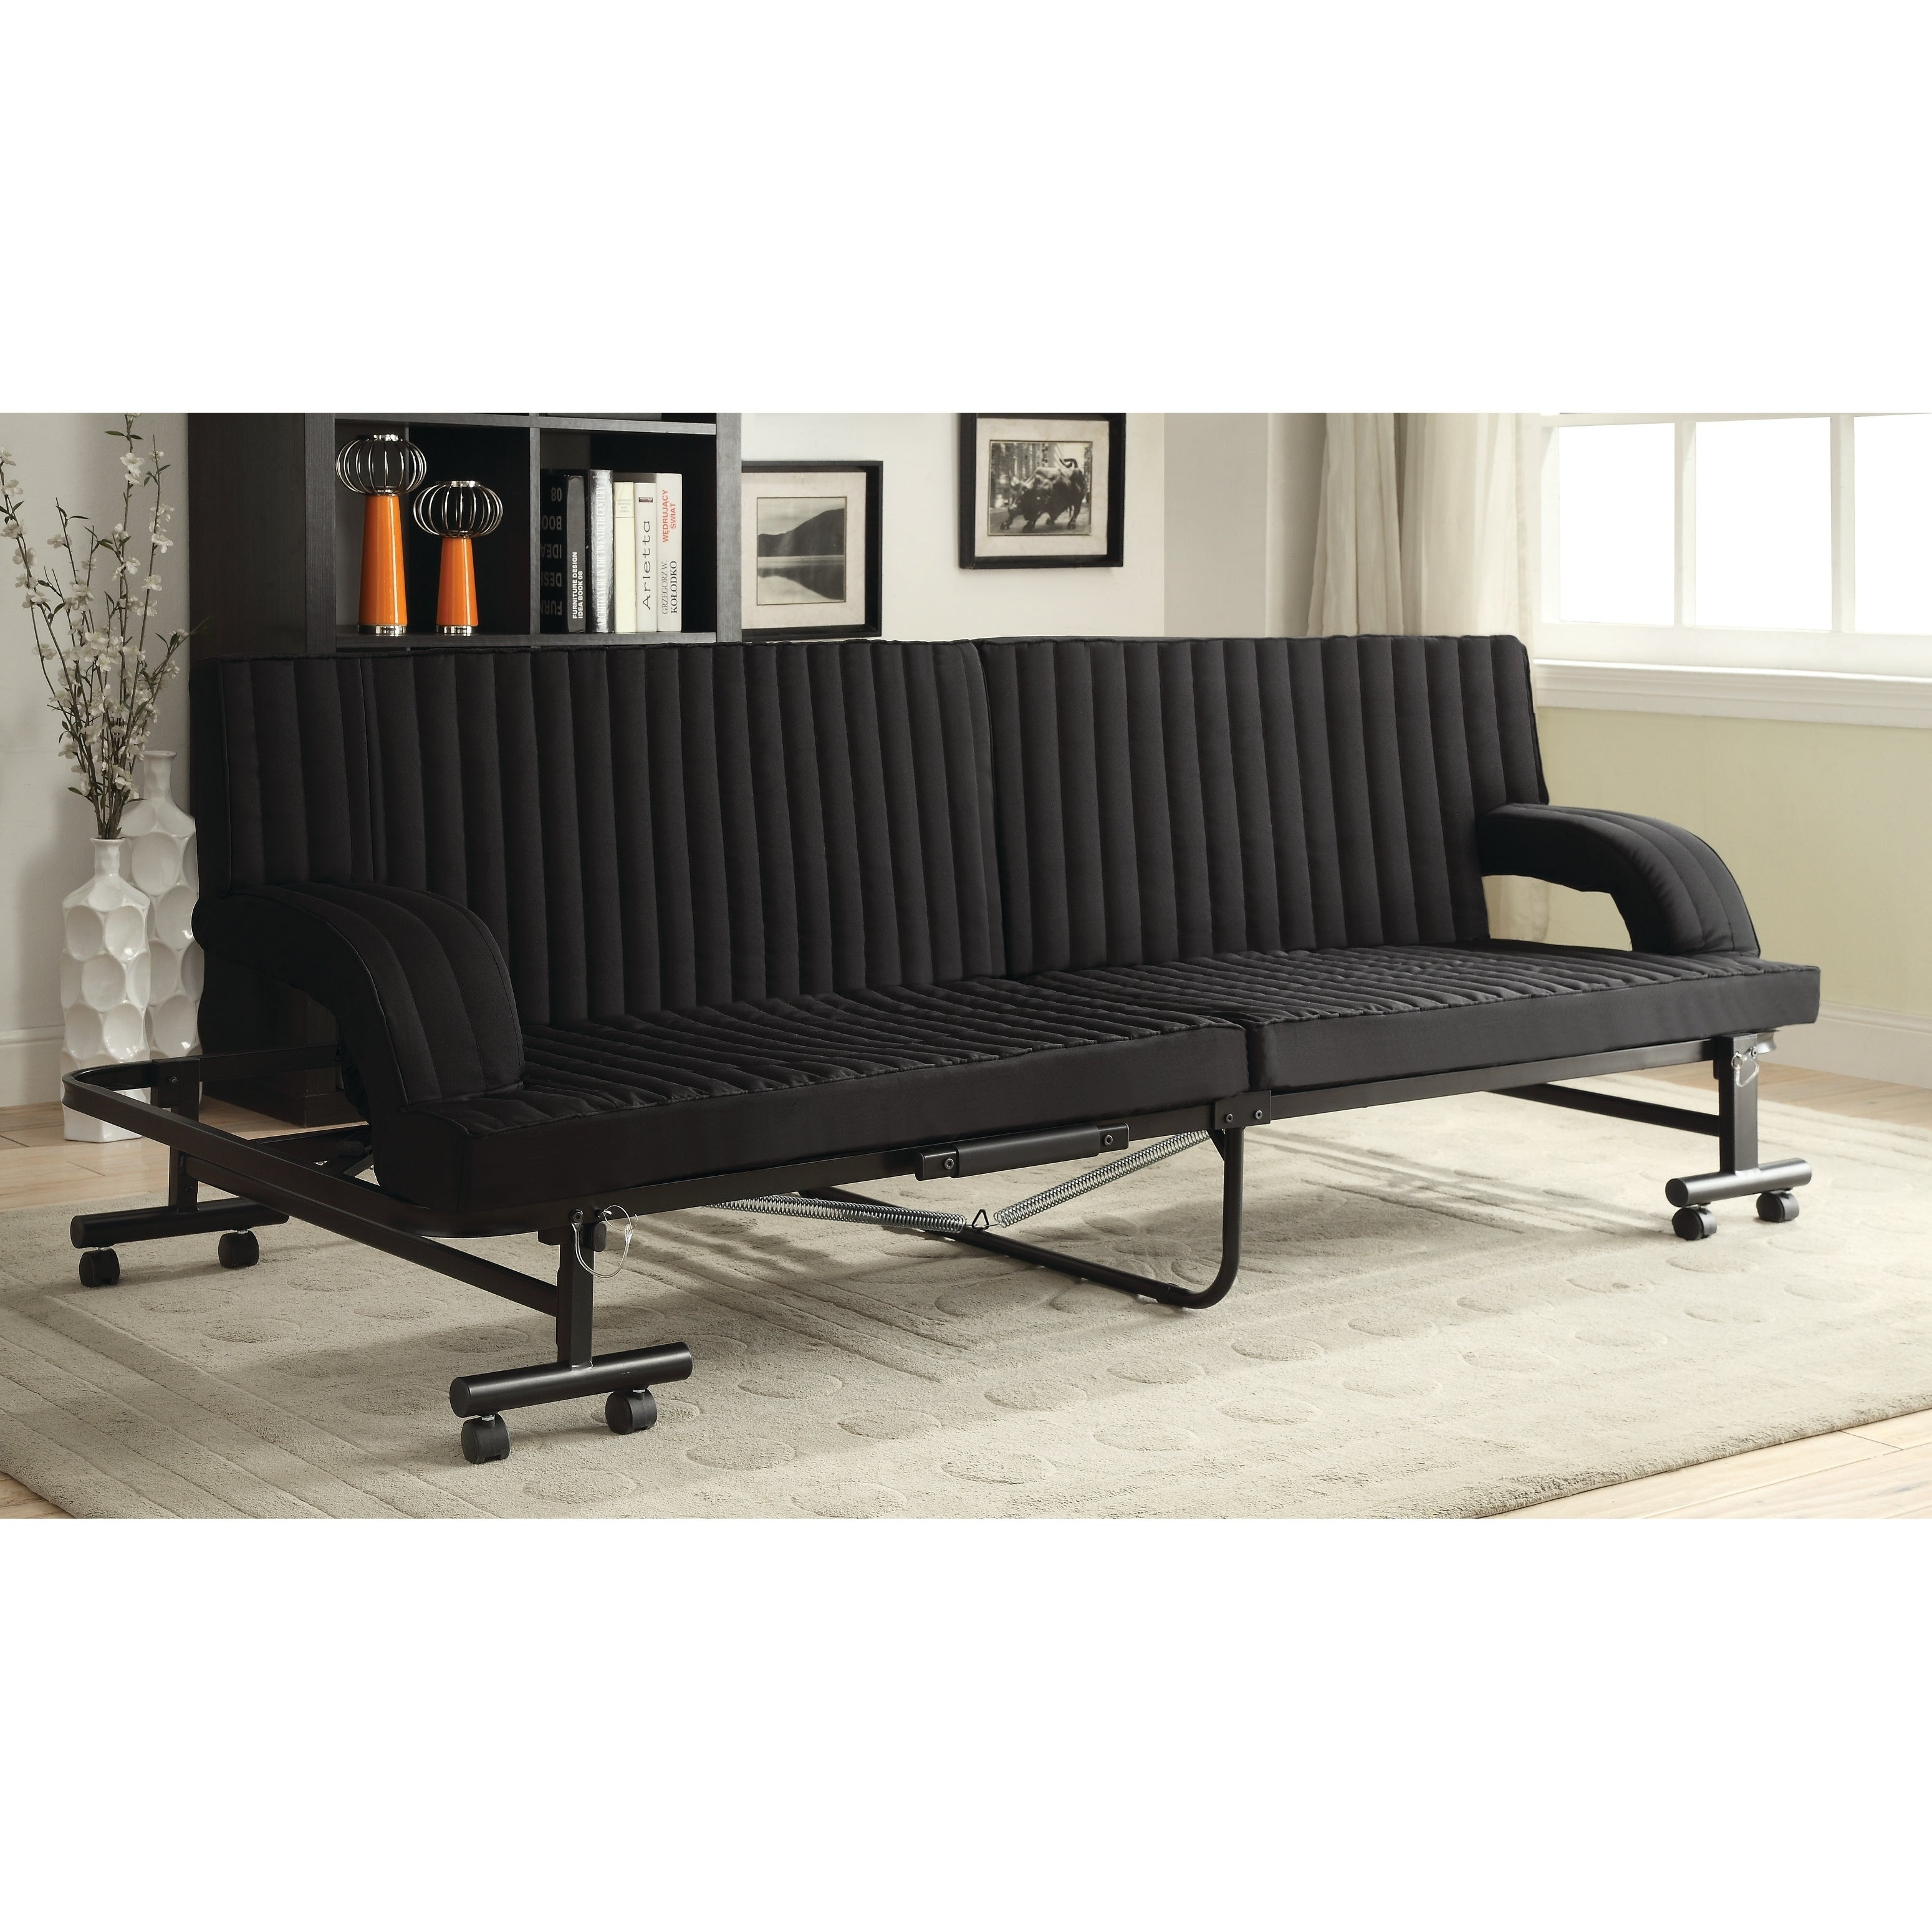 Shop contemporary black folding sofa bed free shipping today overstock com 22047268